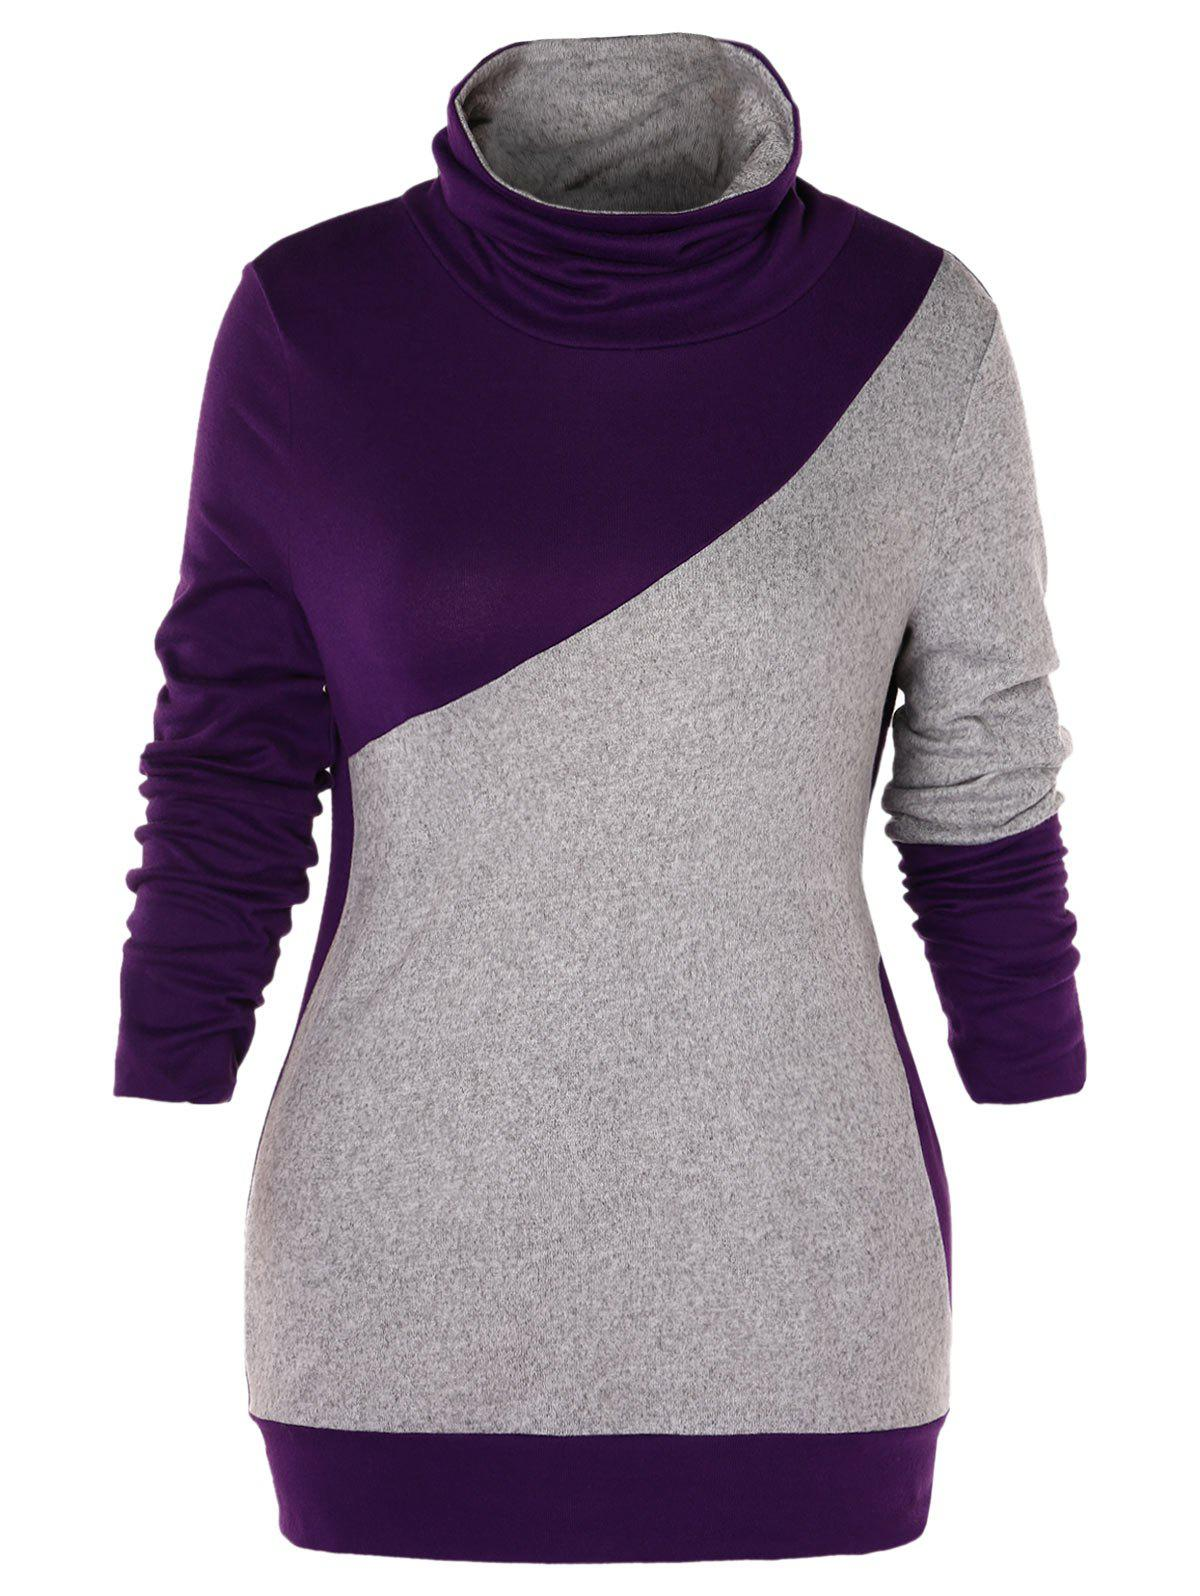 Plus Size Turtleneck Two Tone Sweatshirt - multicolor 4X